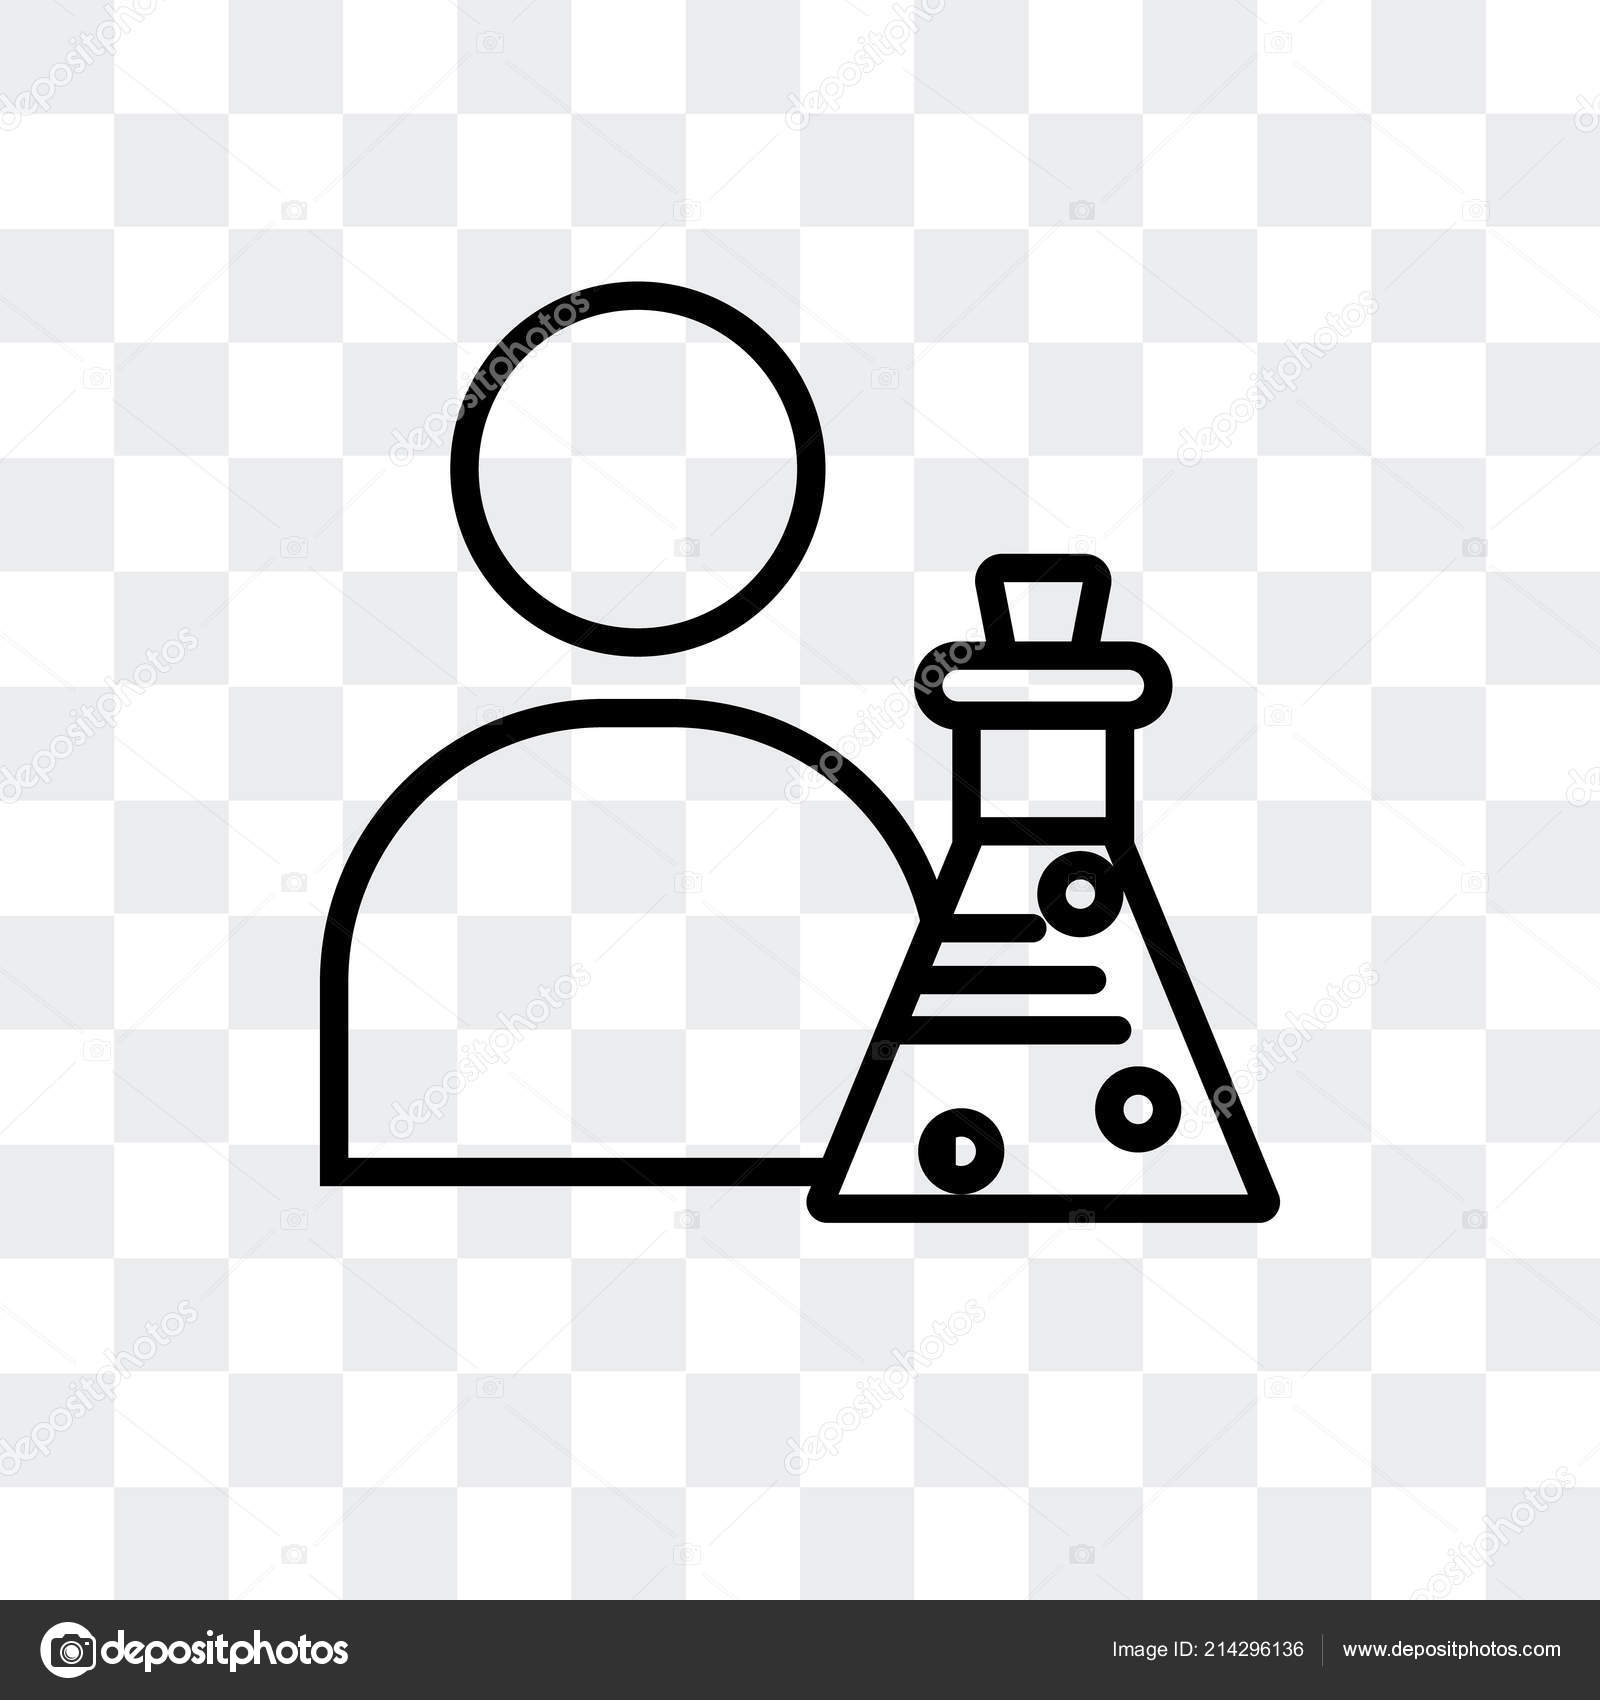 scientist vector icon isolated on transparent background scientist logo design stock vector c bestvectorstock 214296136 https depositphotos com 214296136 stock illustration scientist vector icon isolated on html